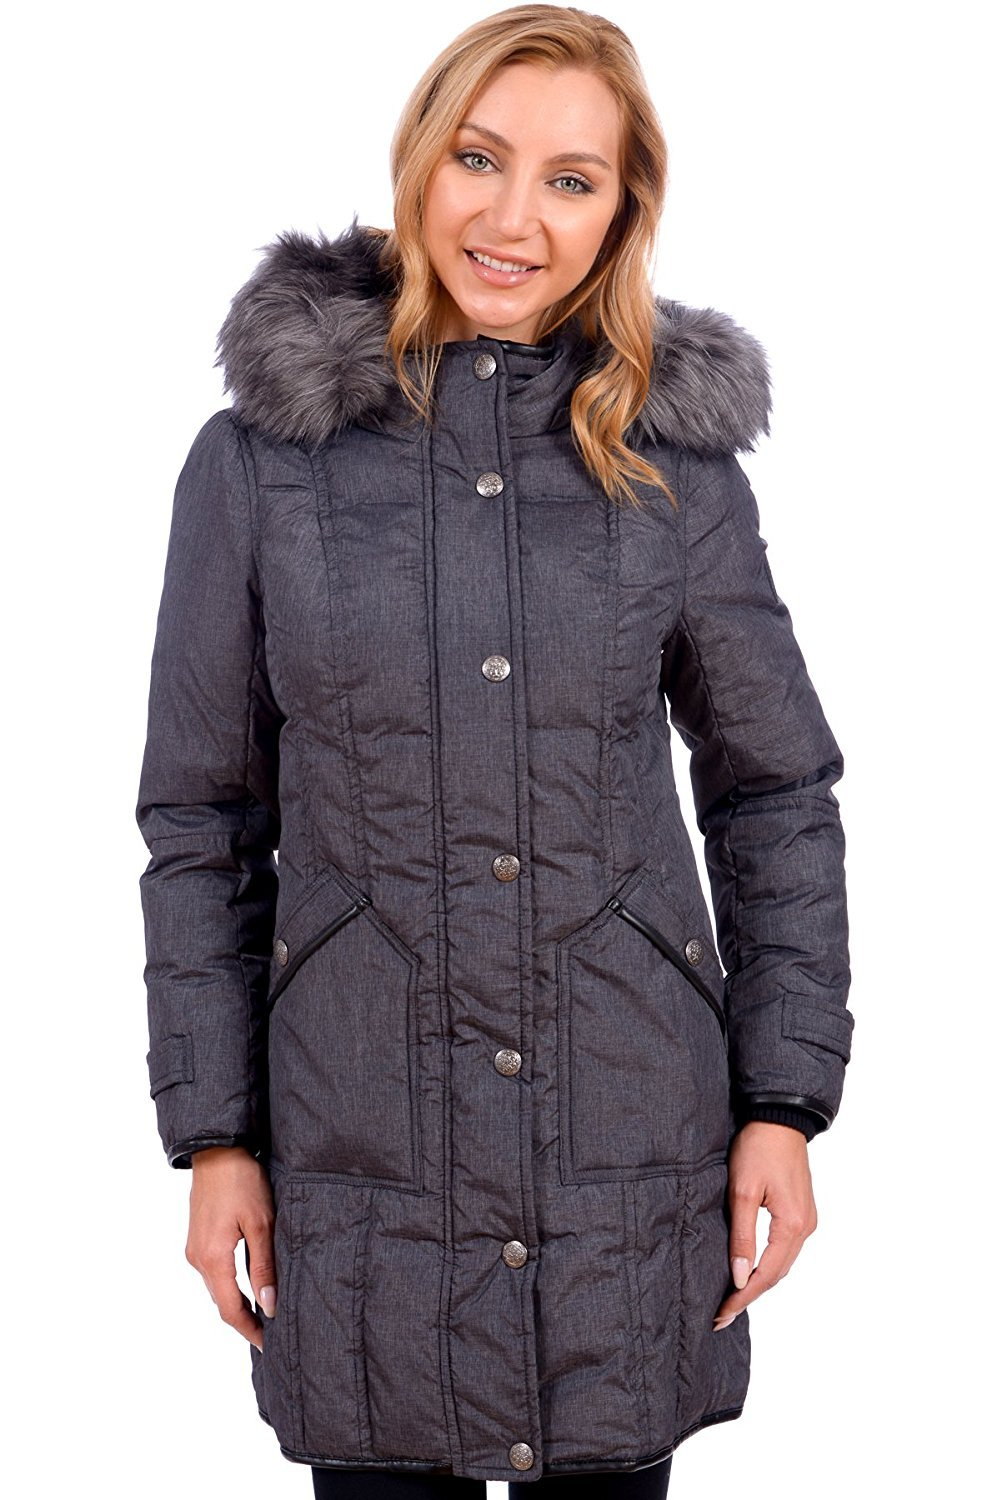 RedX Canada Women's Parka Winter Coat With Faux Fur Lined Hood (2X, Charcoal)